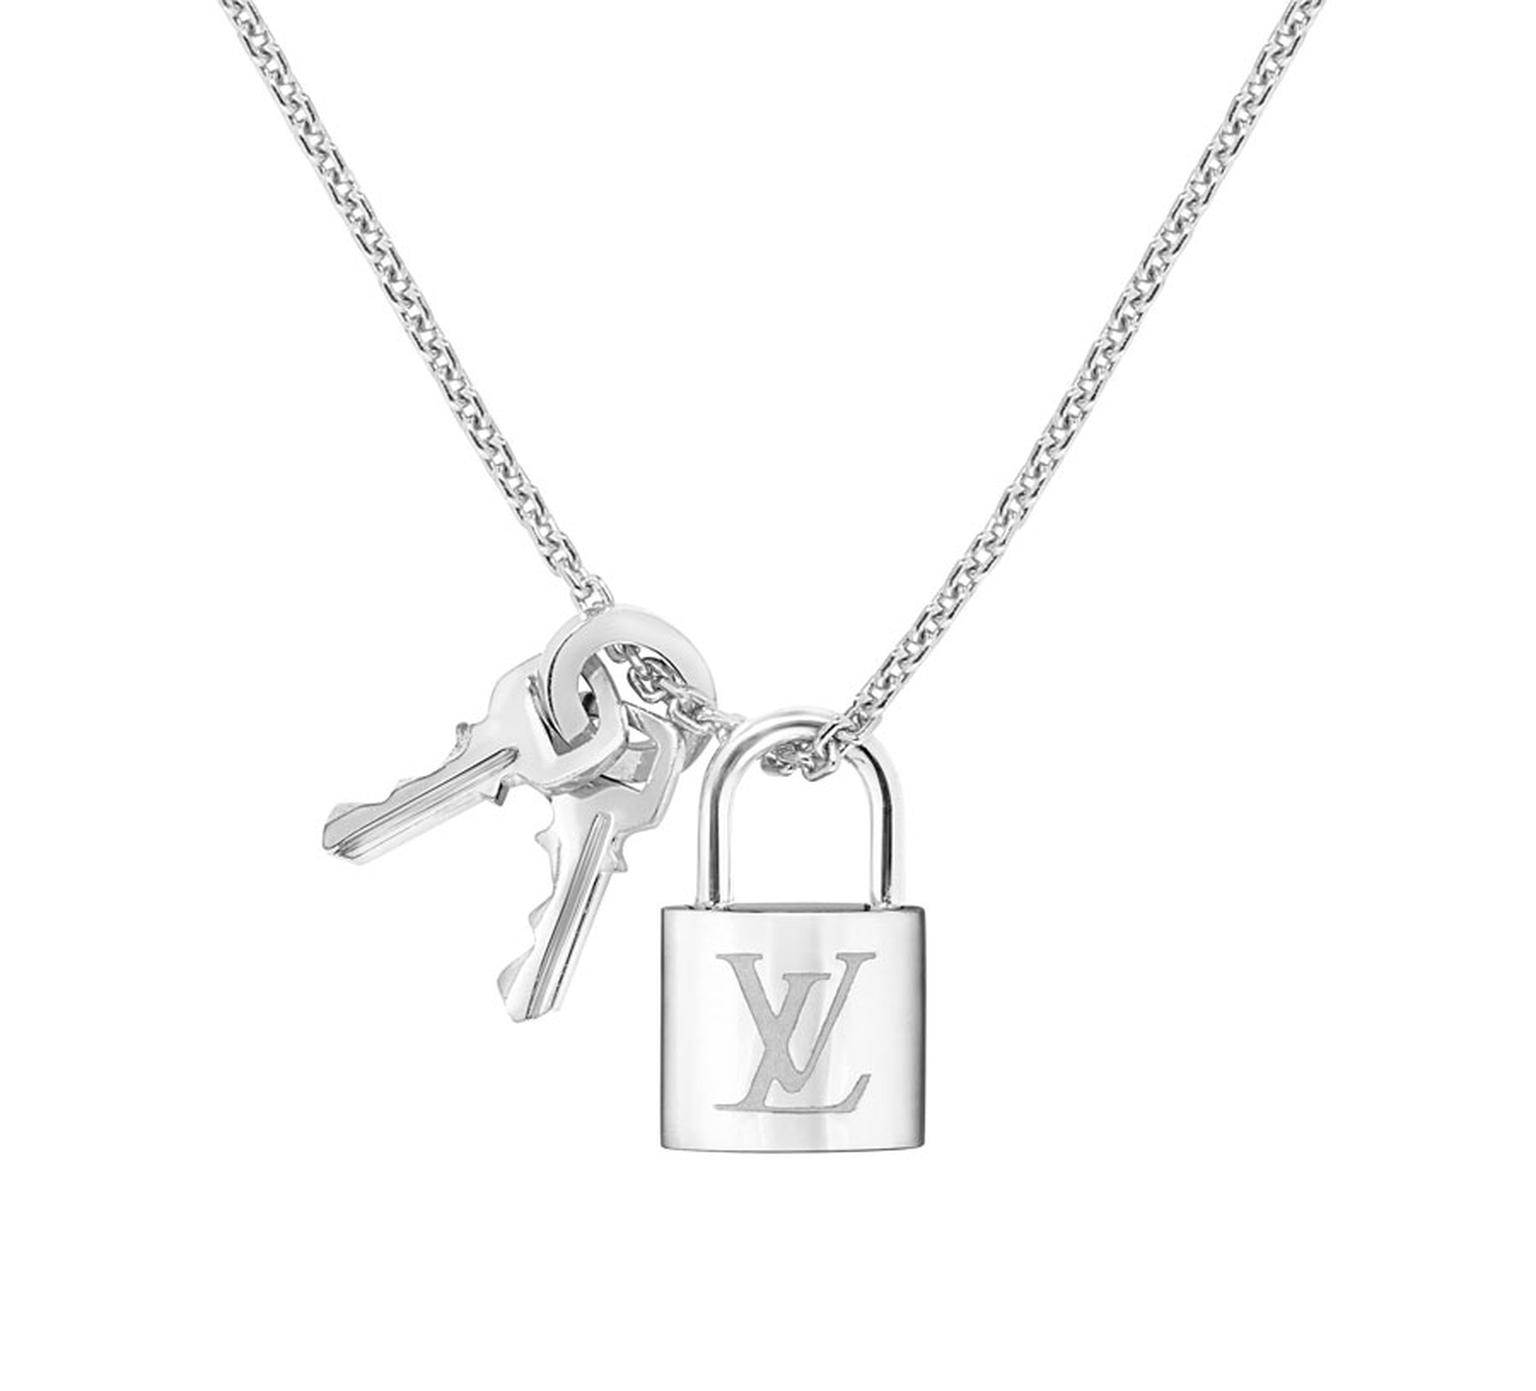 Louis-Vuitton_Lockit_08.jpg